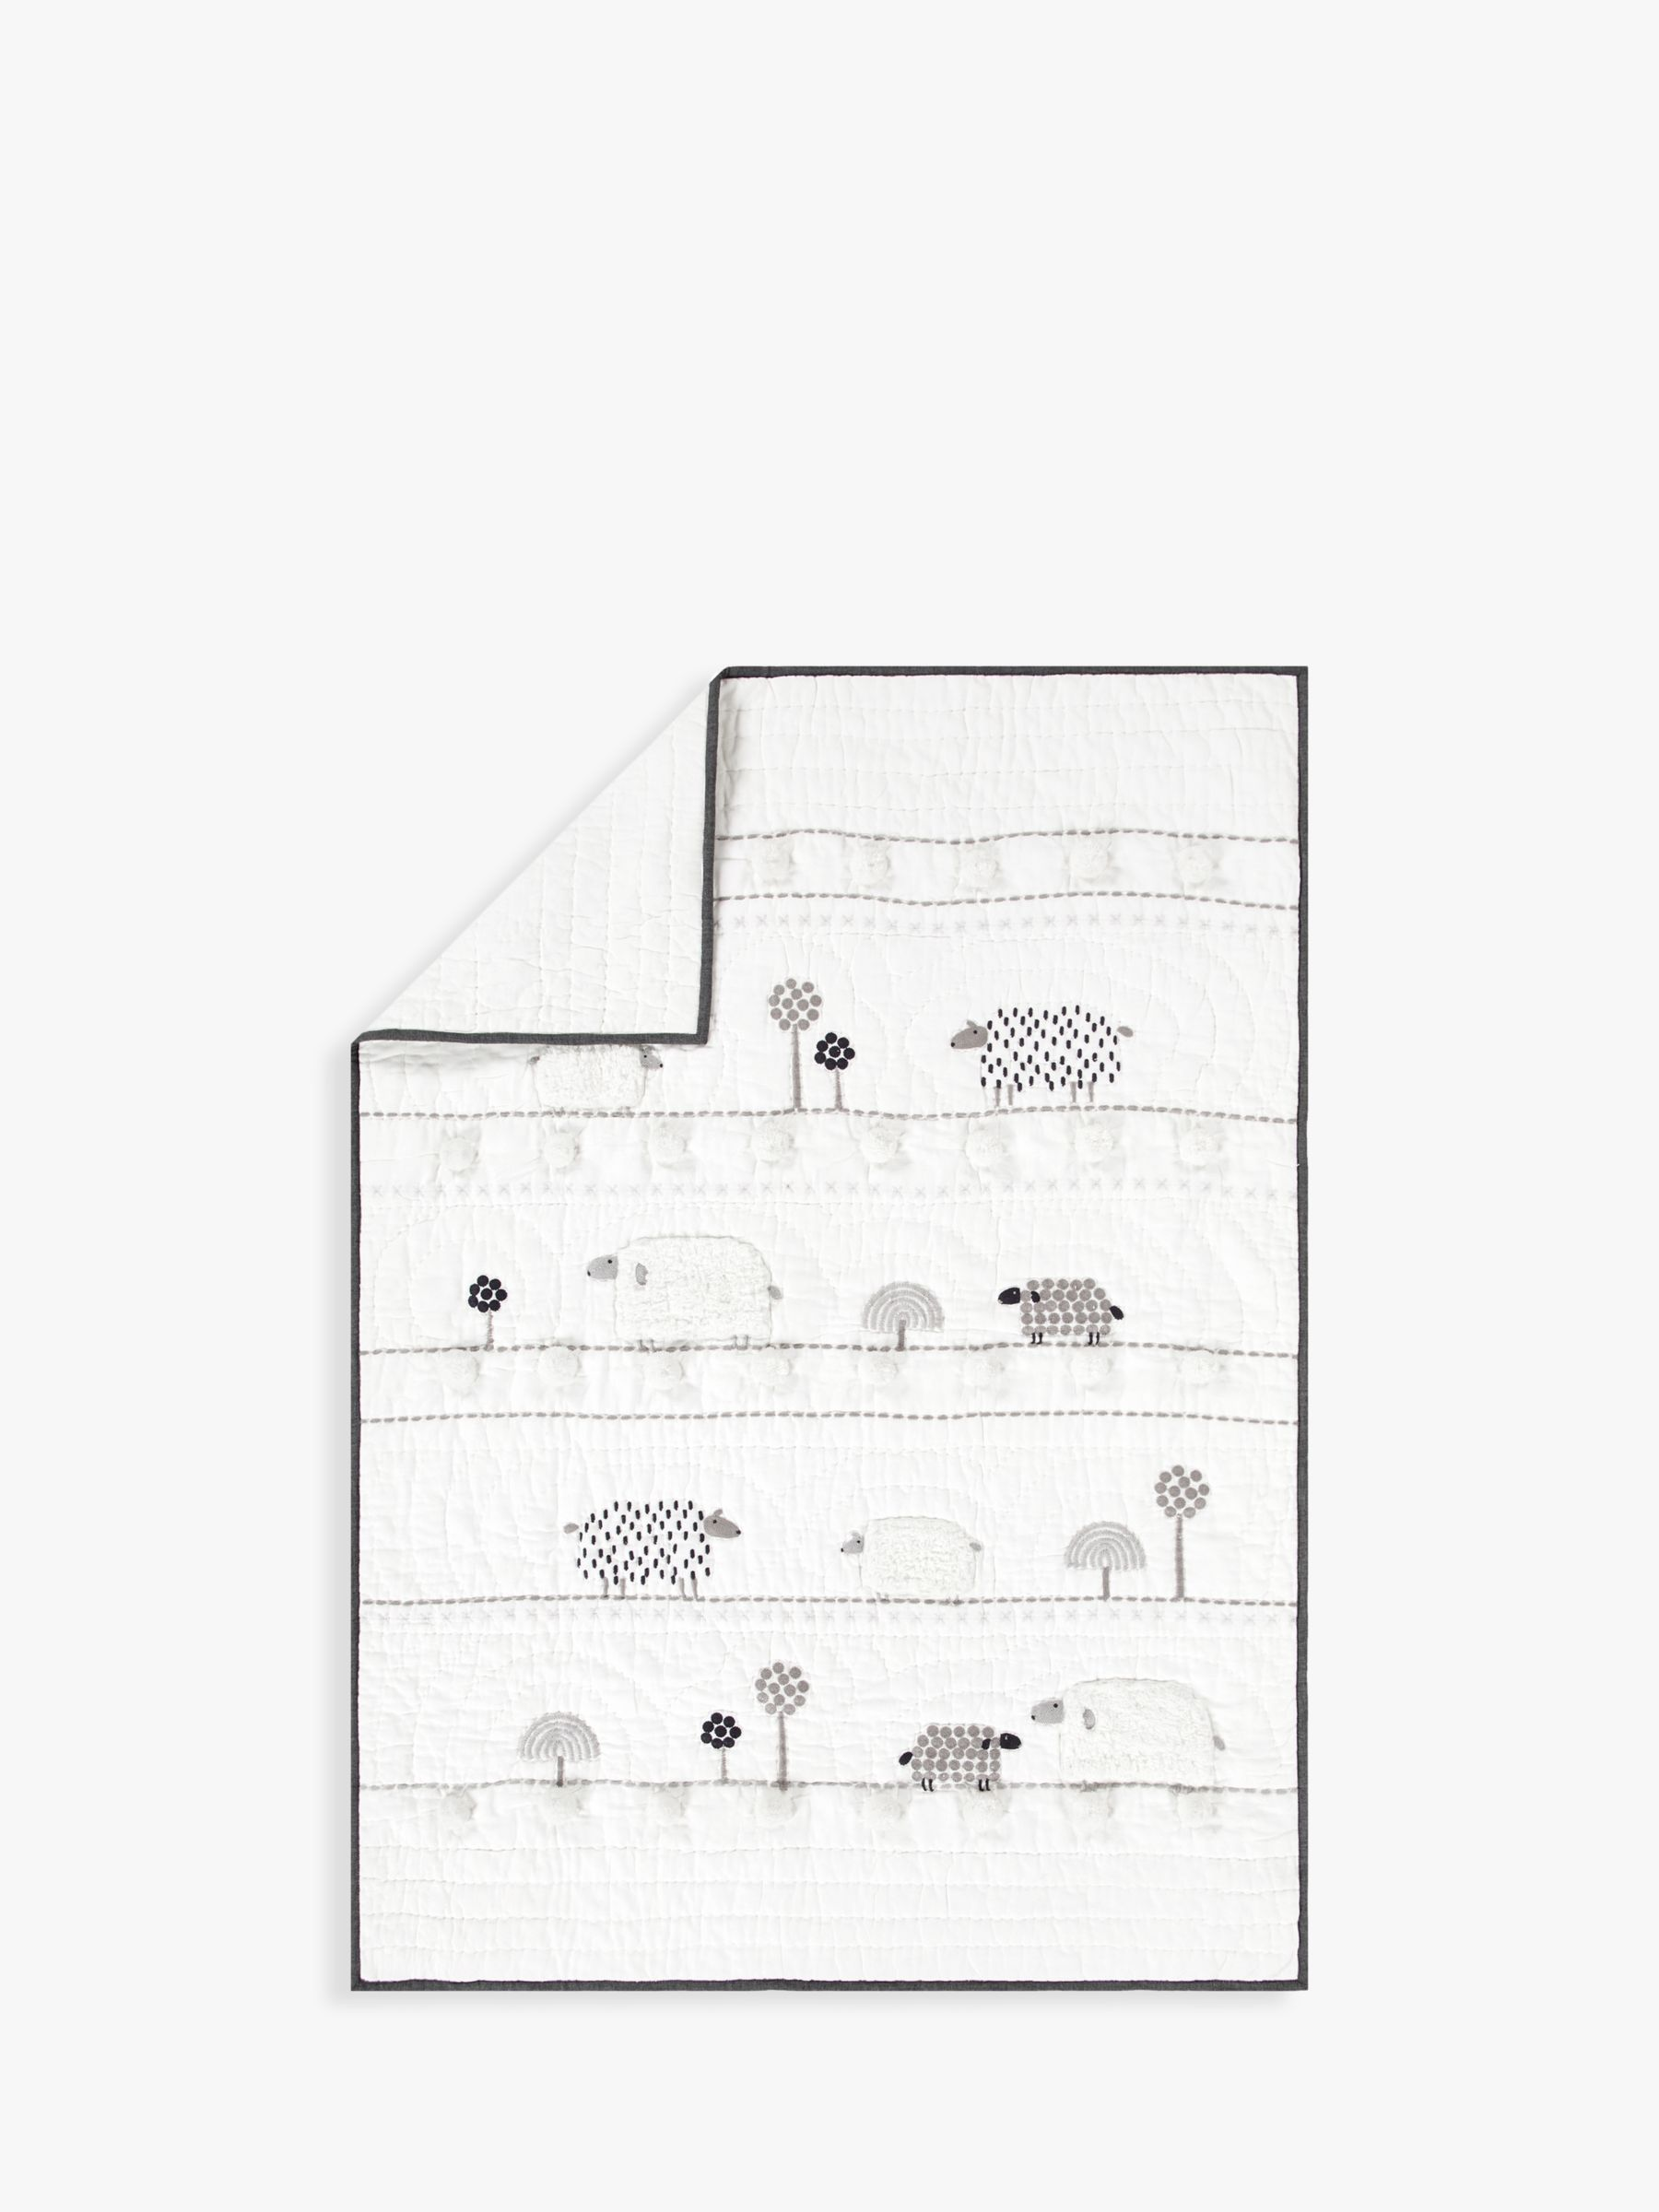 Pottery Barn Kids Shelby Sheep Toddler Bed Quilt, 127 x 91cm, Ivory